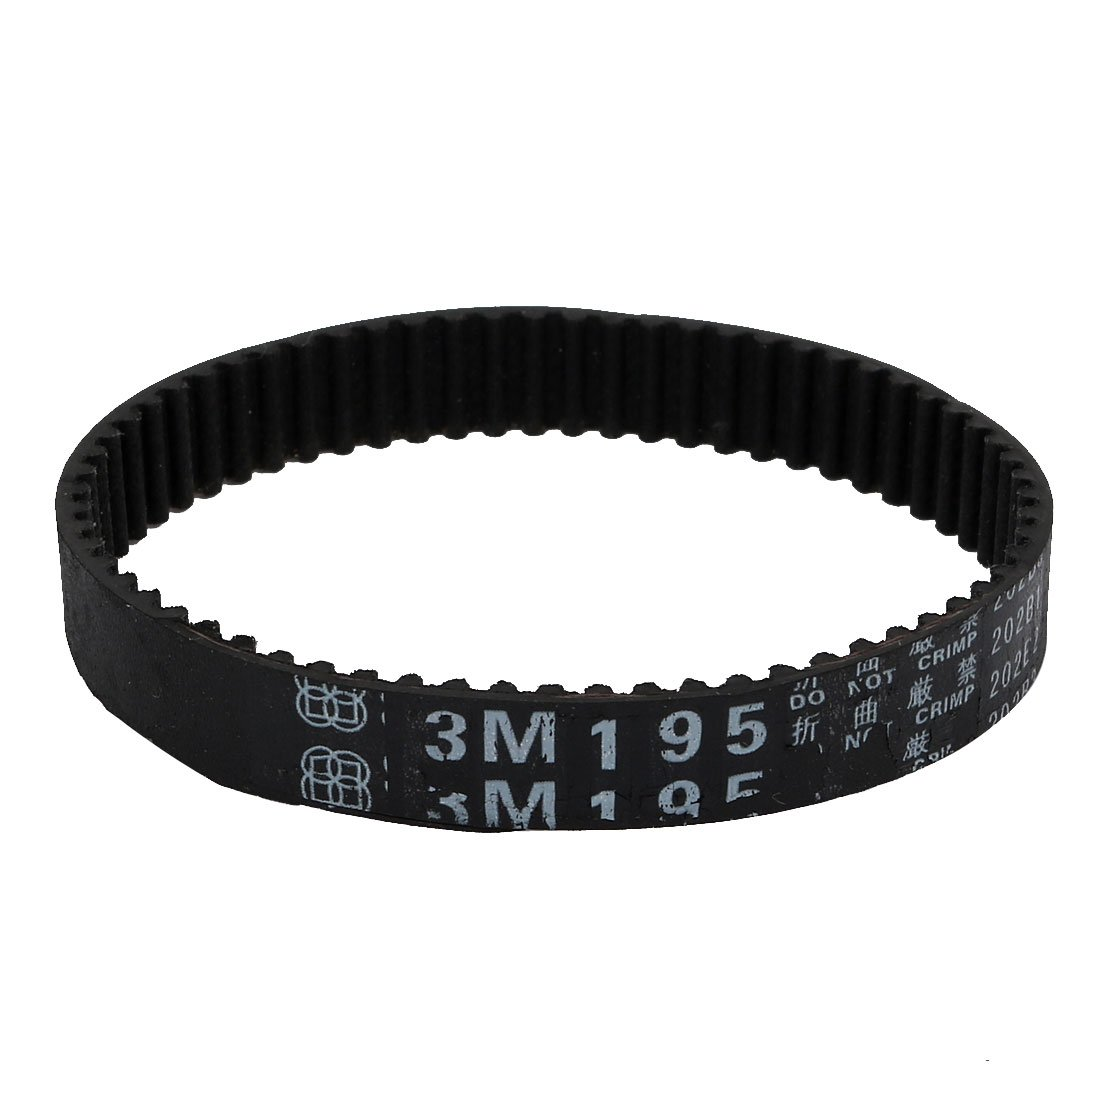 uxcell HTD3M186 62 Teeth 10mm Width Synchronous Closed Loop Rubber Timing Belt Black